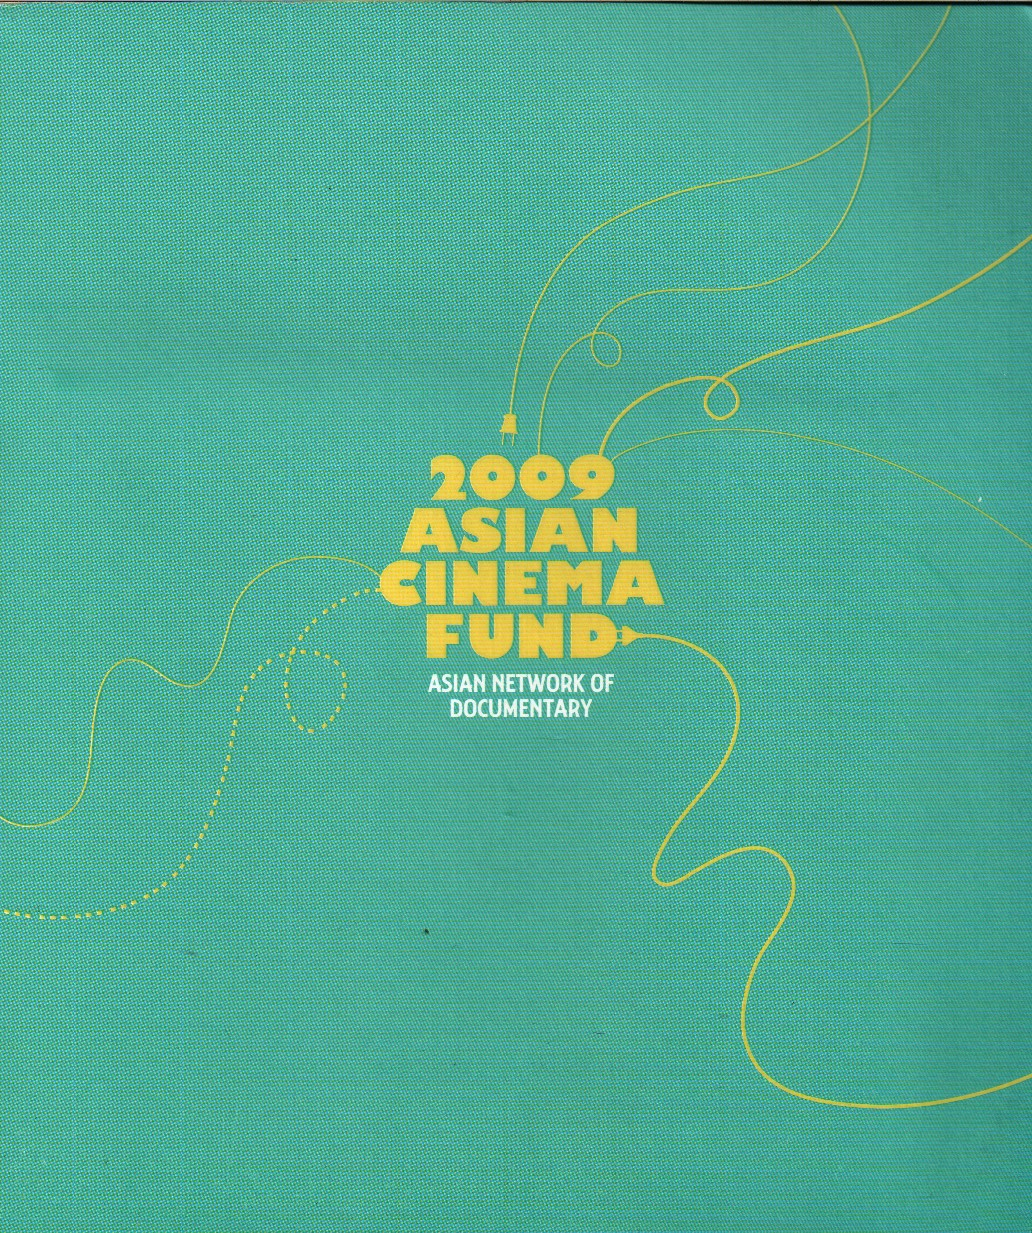 Asian Cinema Fund. Asian Network of Documentary 2009